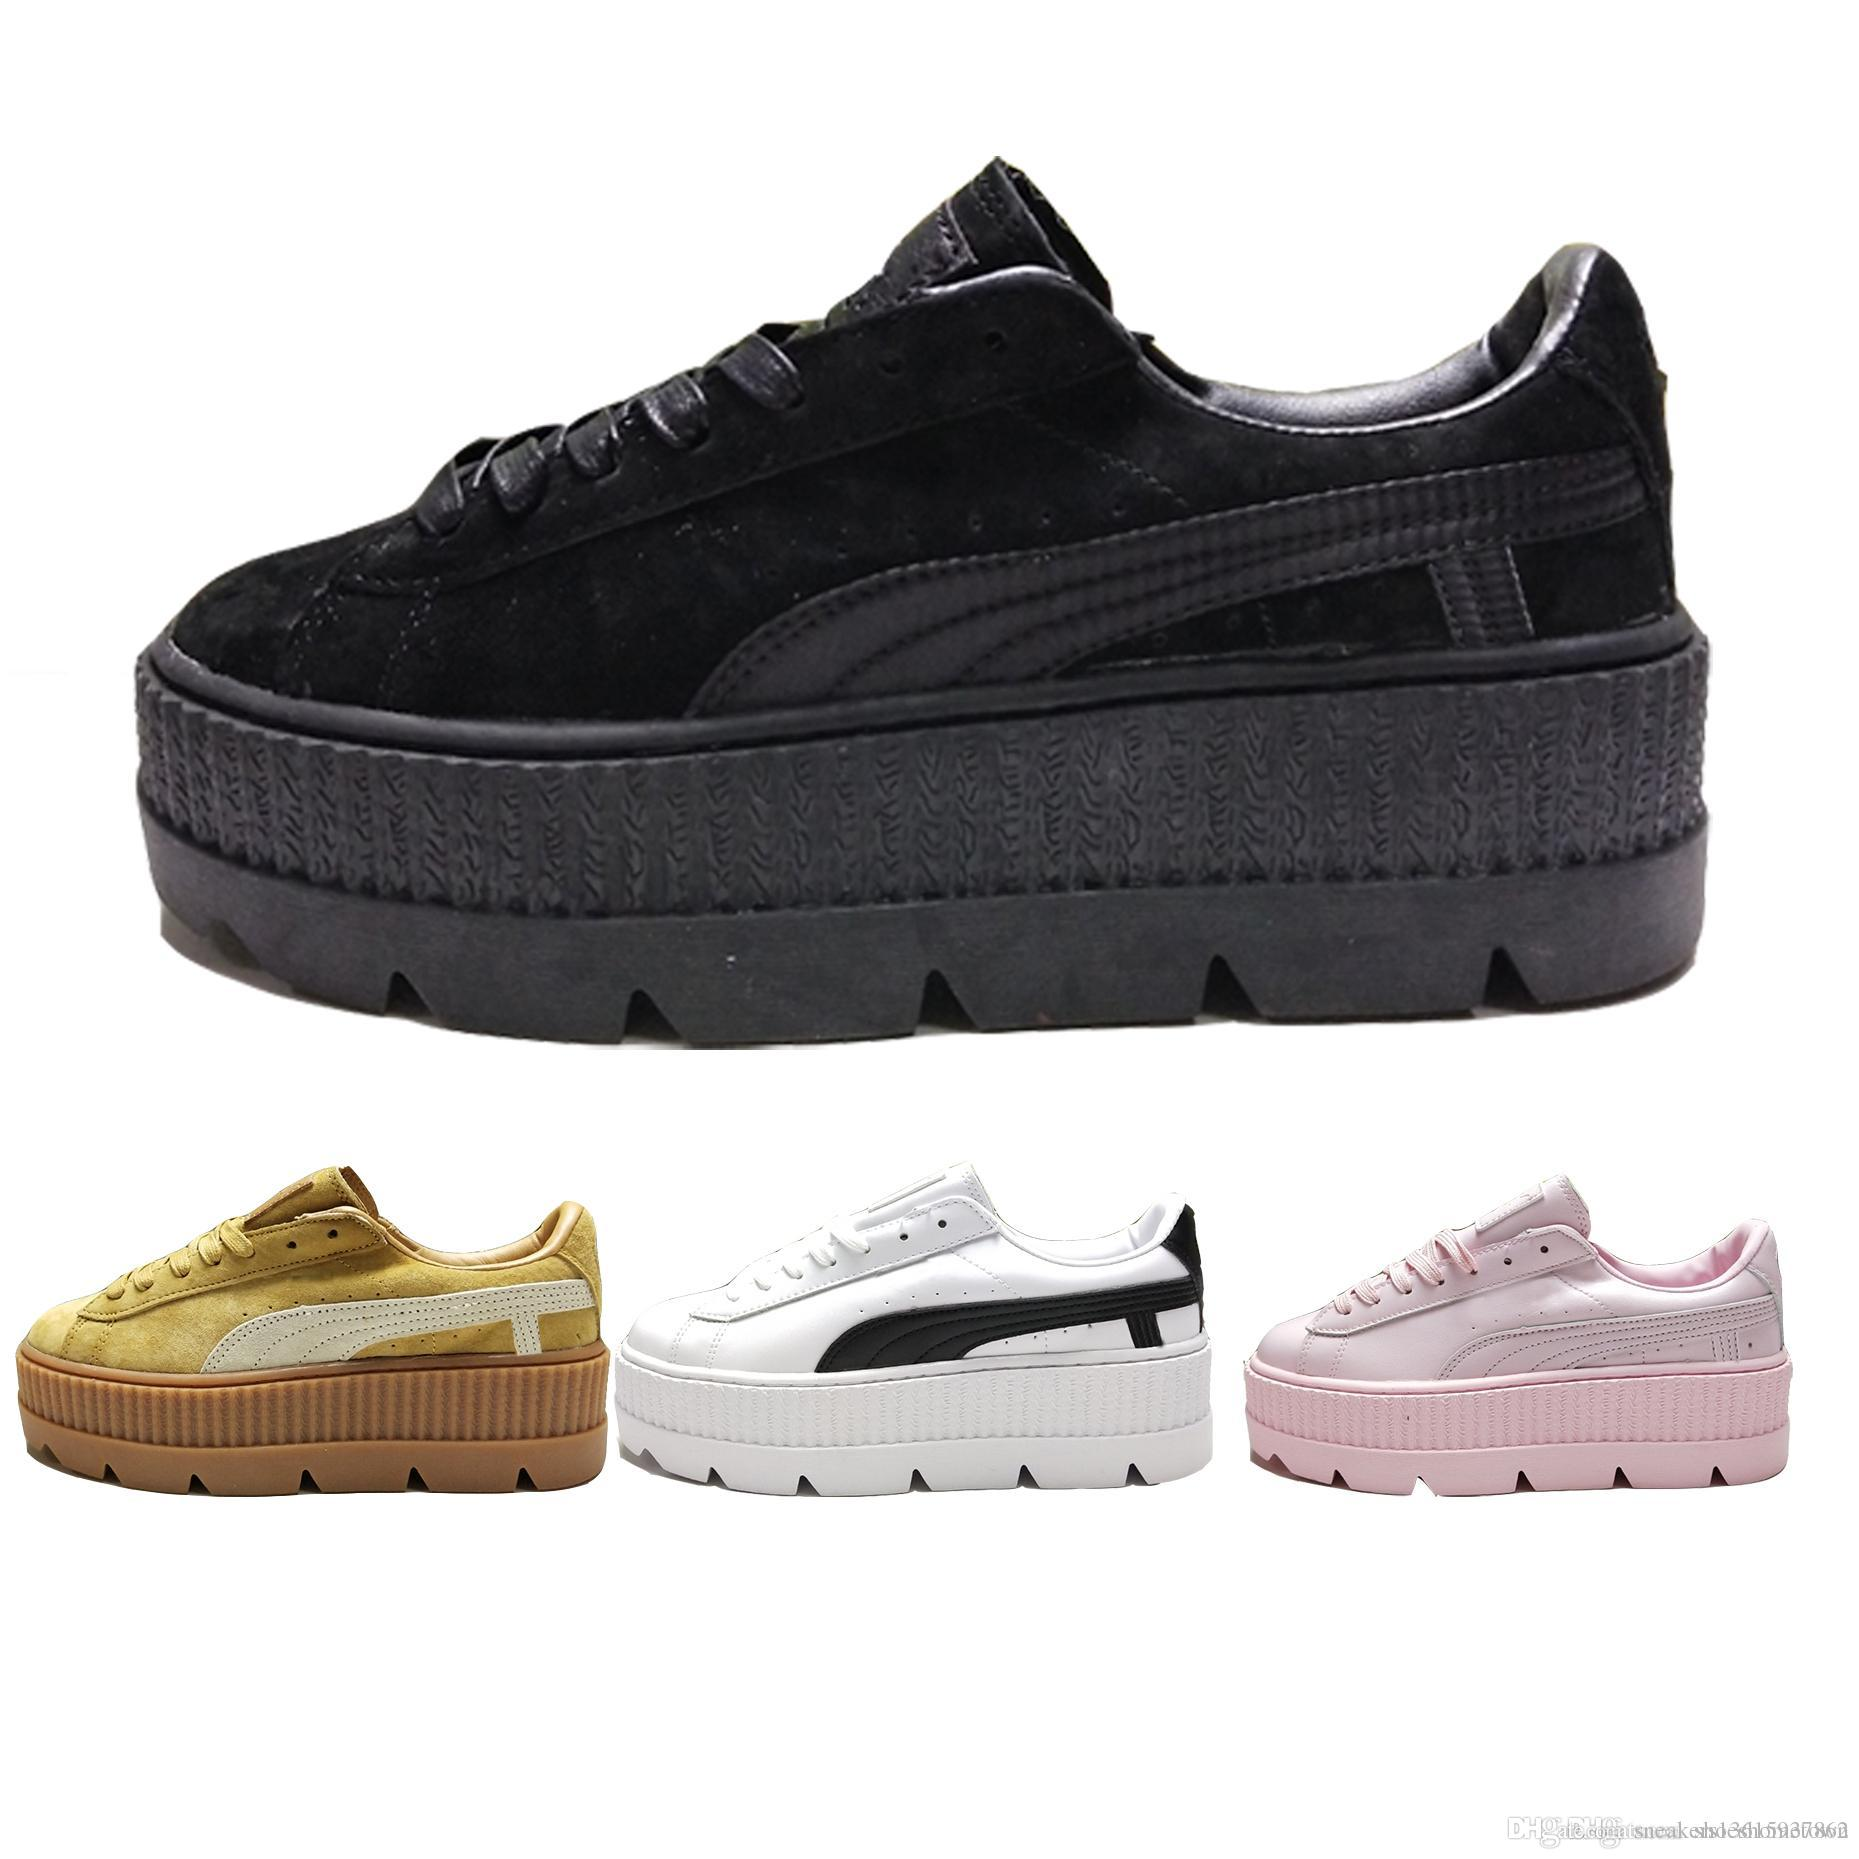 promo code 4daca a6ac9 NEW Suede Rihanna PUM Fenty Cleated Creepers Classic Platform Casual Shoes  Women Fasion Footwear Sneakers Black Pink White Wheat Size 36 39 Sneakers  ...